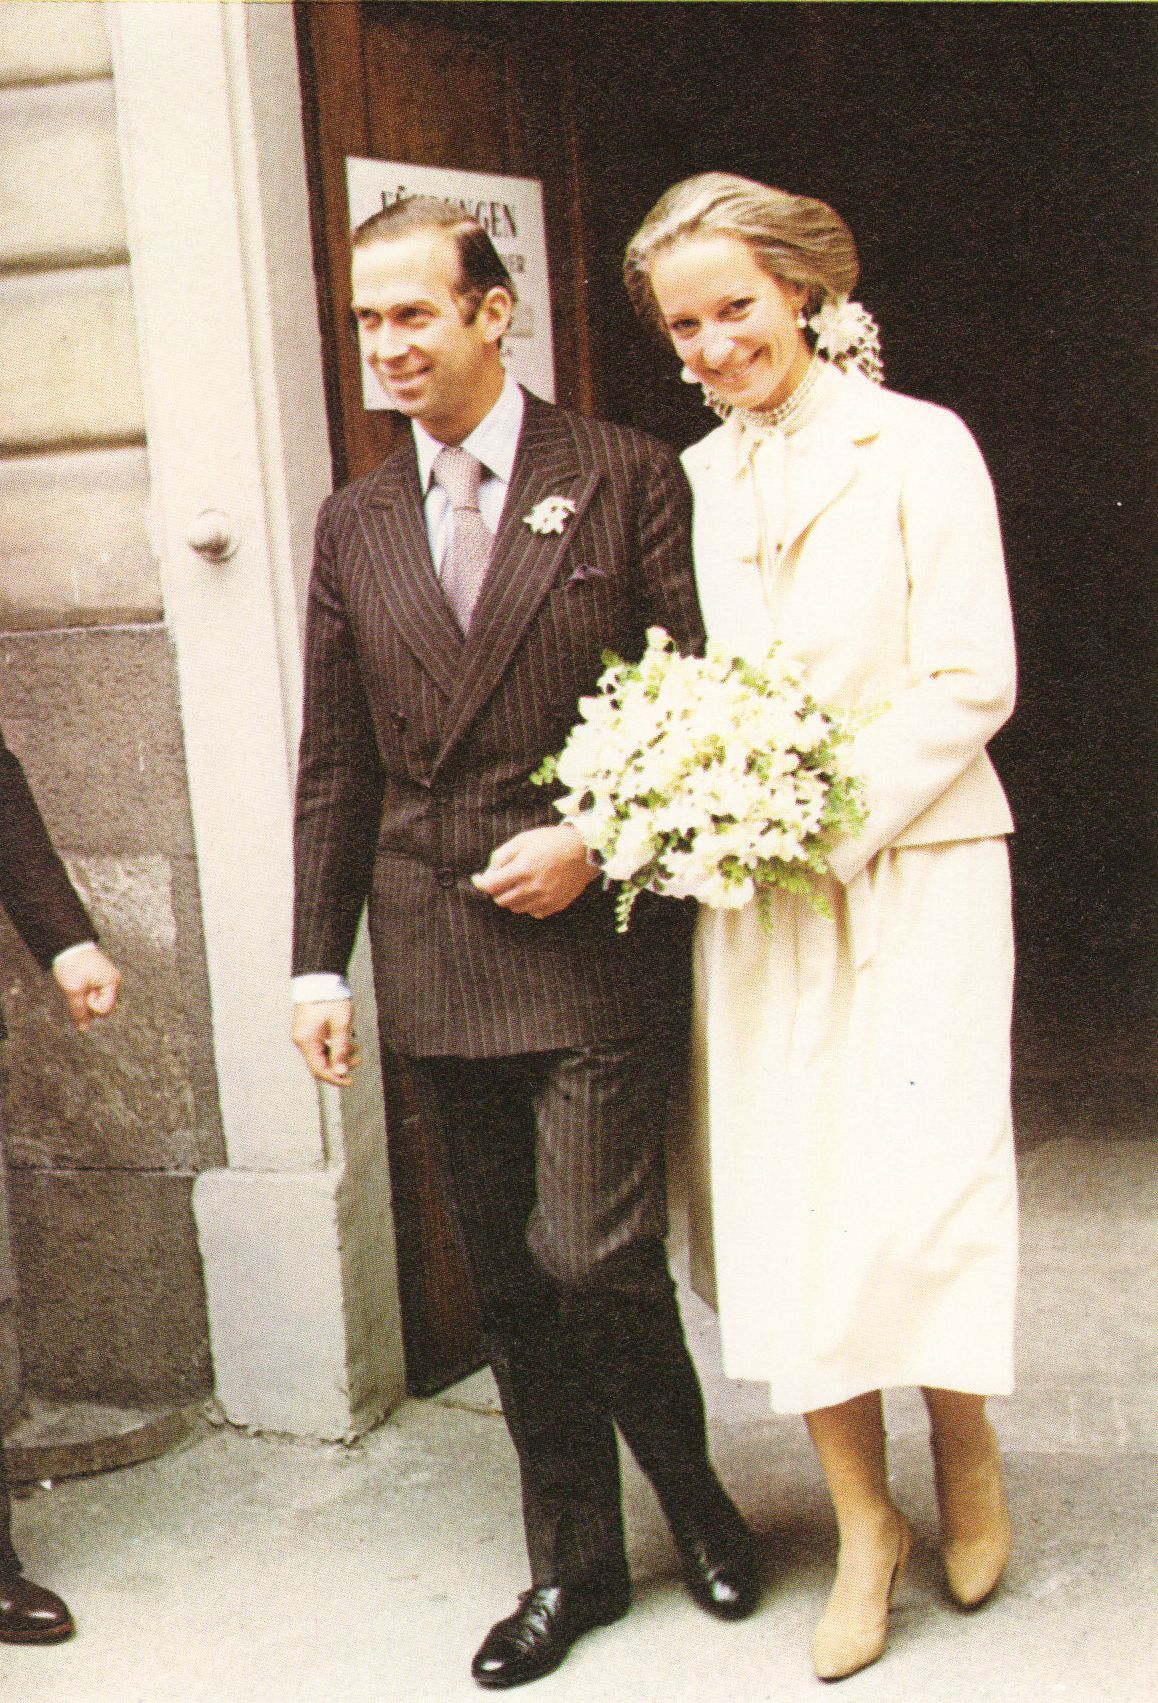 35th wedding anniversary of prince michael of kent and